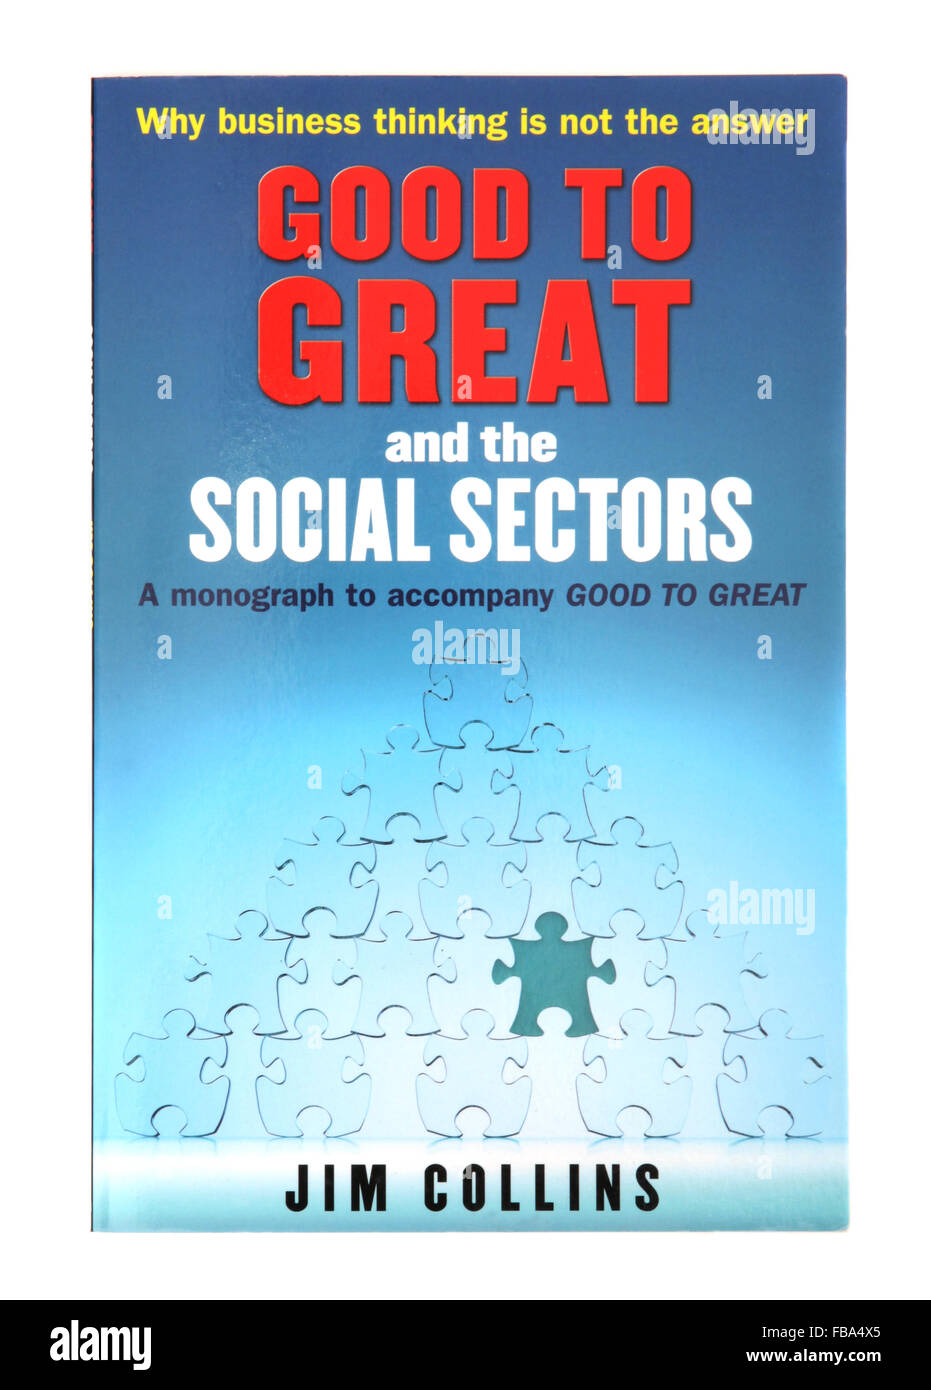 The book - Good to Great and the Social Sectors by Jim Collins - Stock Image